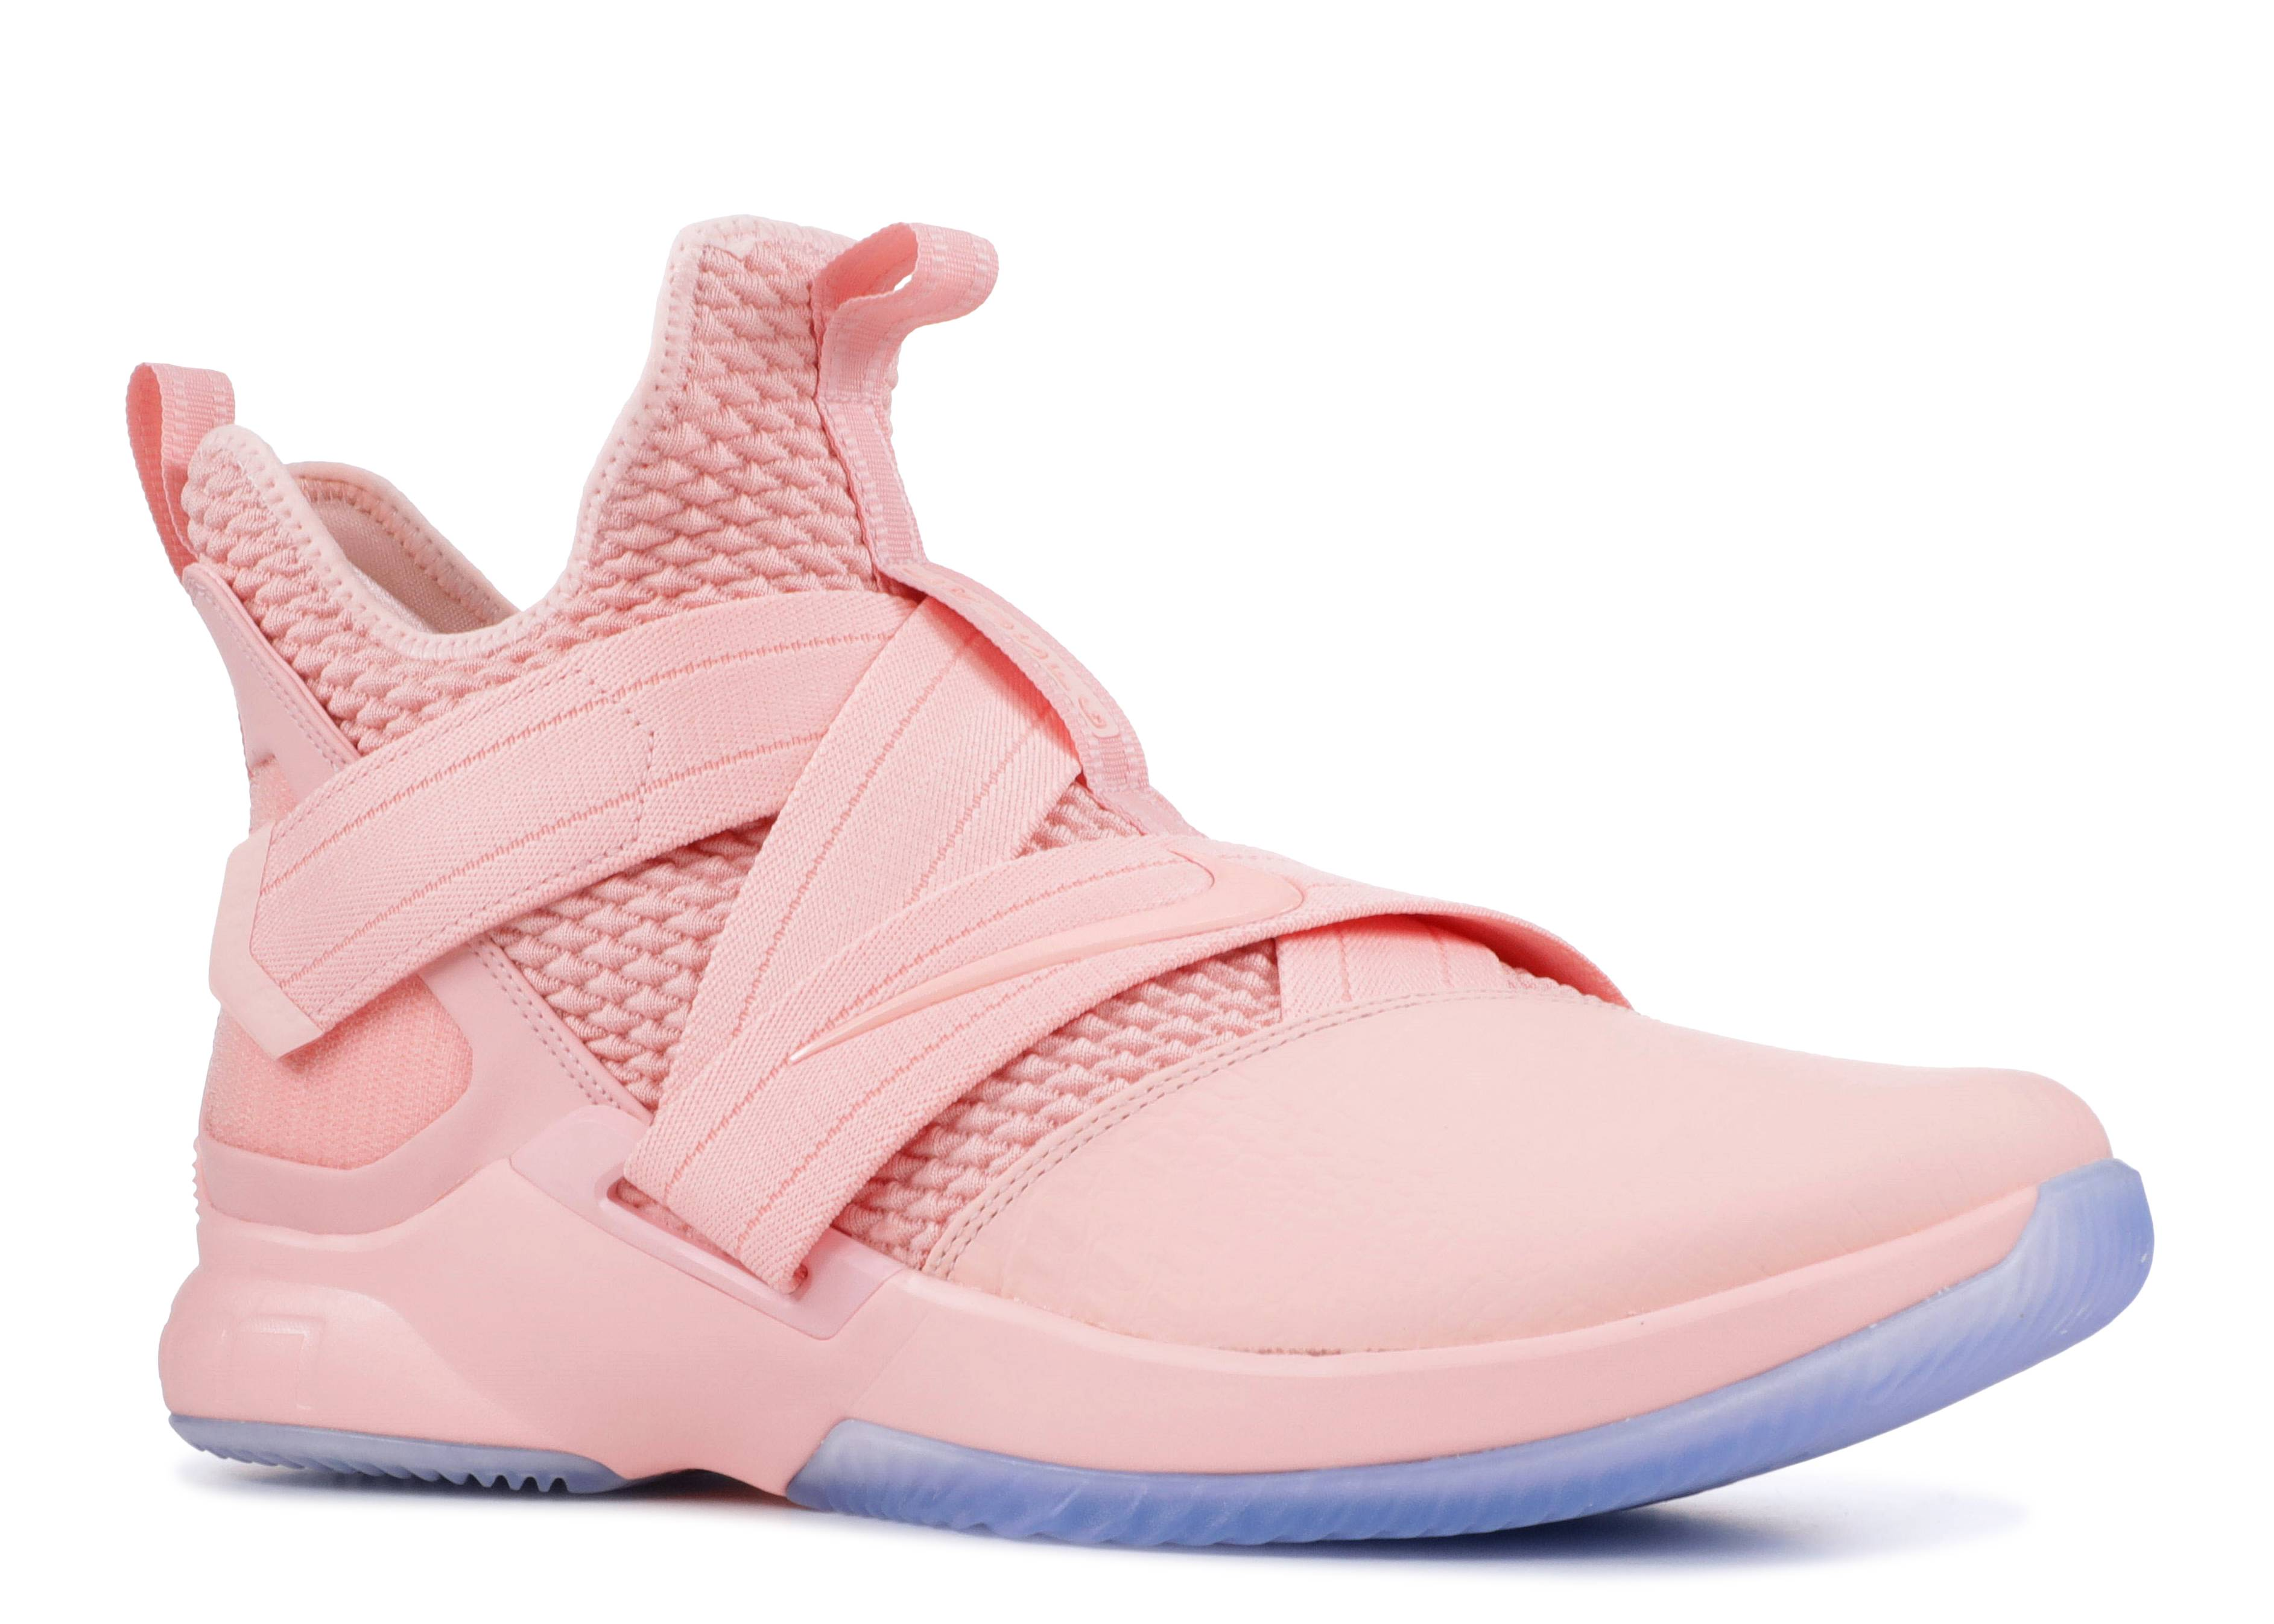 outlet store 24120 80c08 Lebron Soldier 12 Sfg